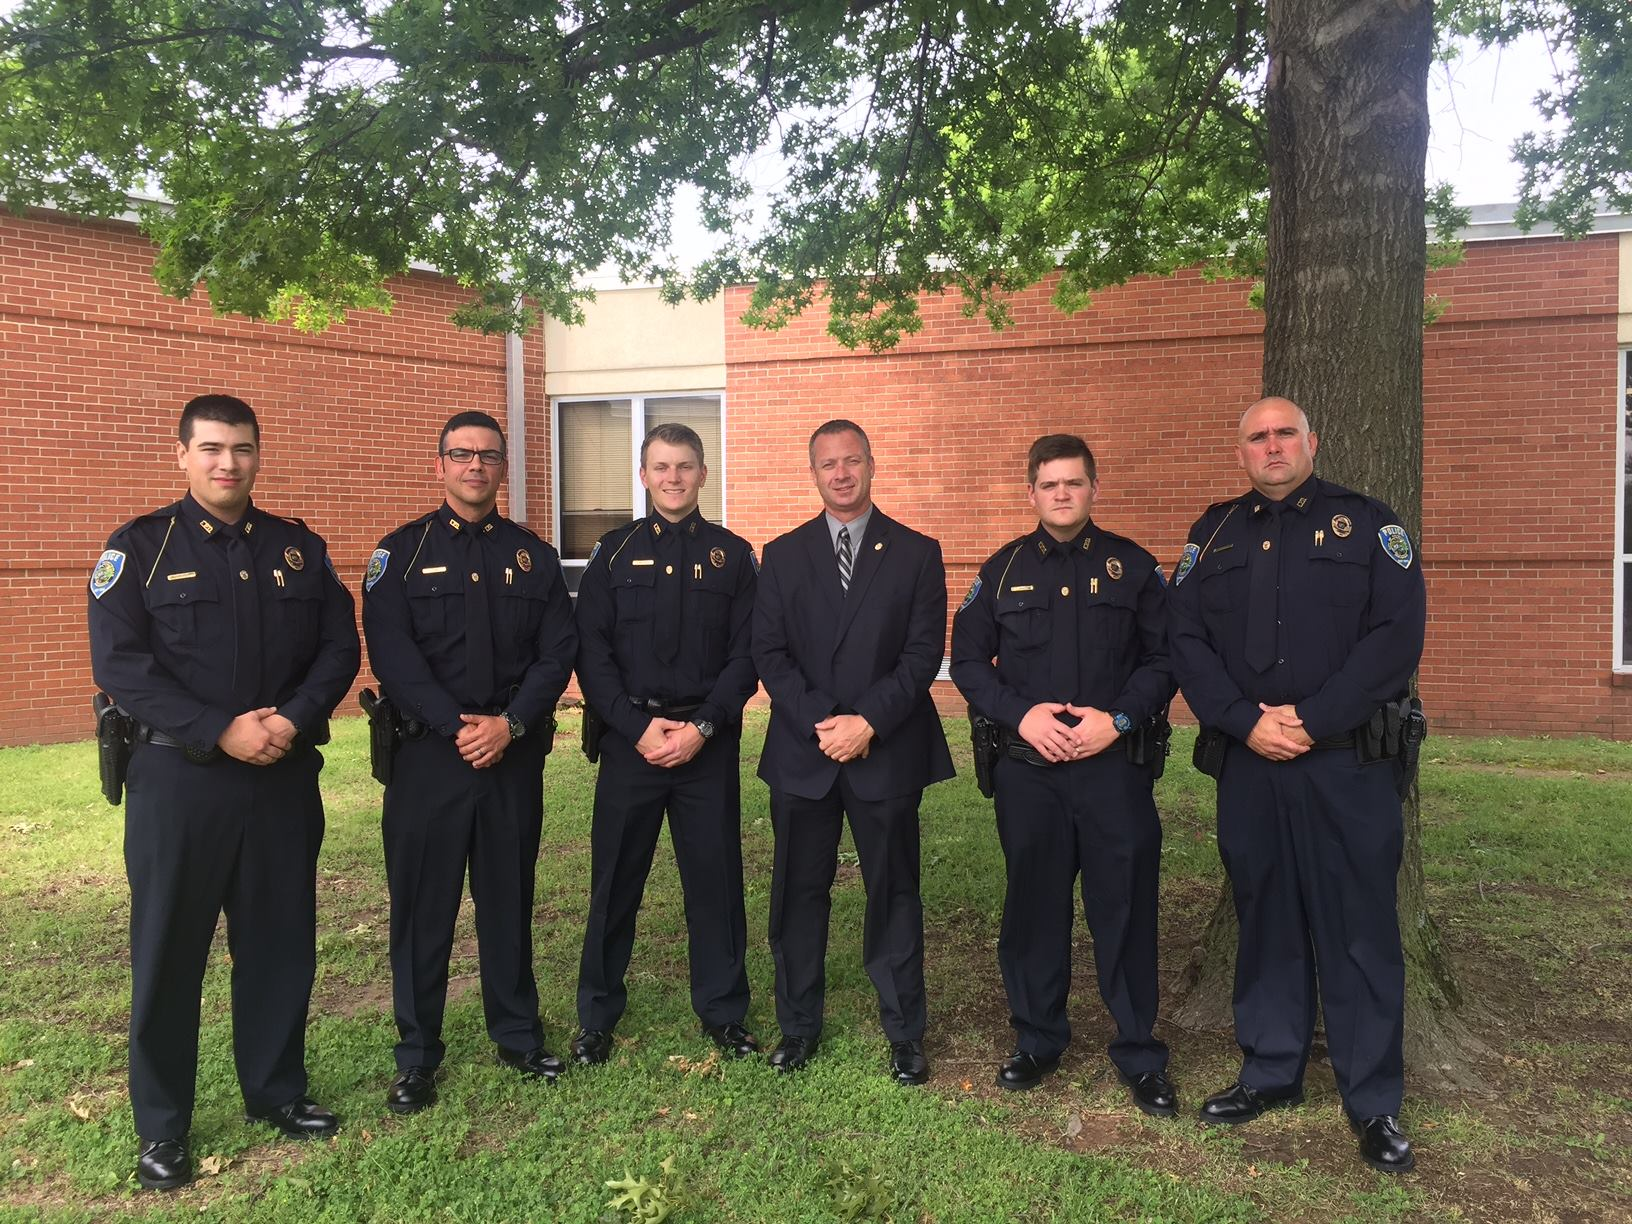 Officer Cody McAbee, Officer Andrew Byrnes, Officer Dylan Weisenfels, Deputy Chief of Police Mike Reynolds, Officer Page Summers, and Officer Justin Harlan.